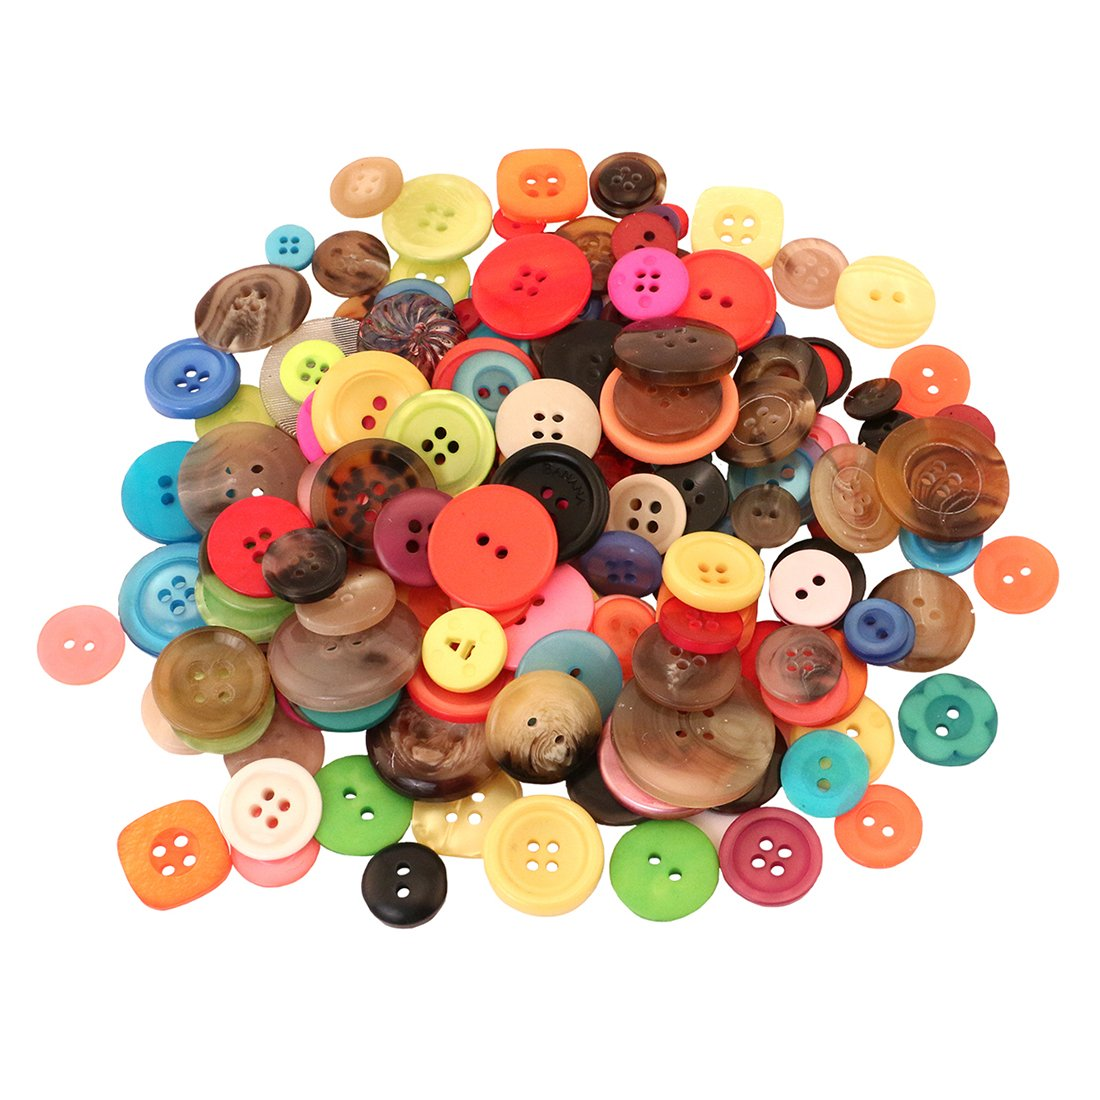 Hygloss Products Bucket O' Buttons, Assorted Buttons for Arts and Crafts, 5 Pound Bucket